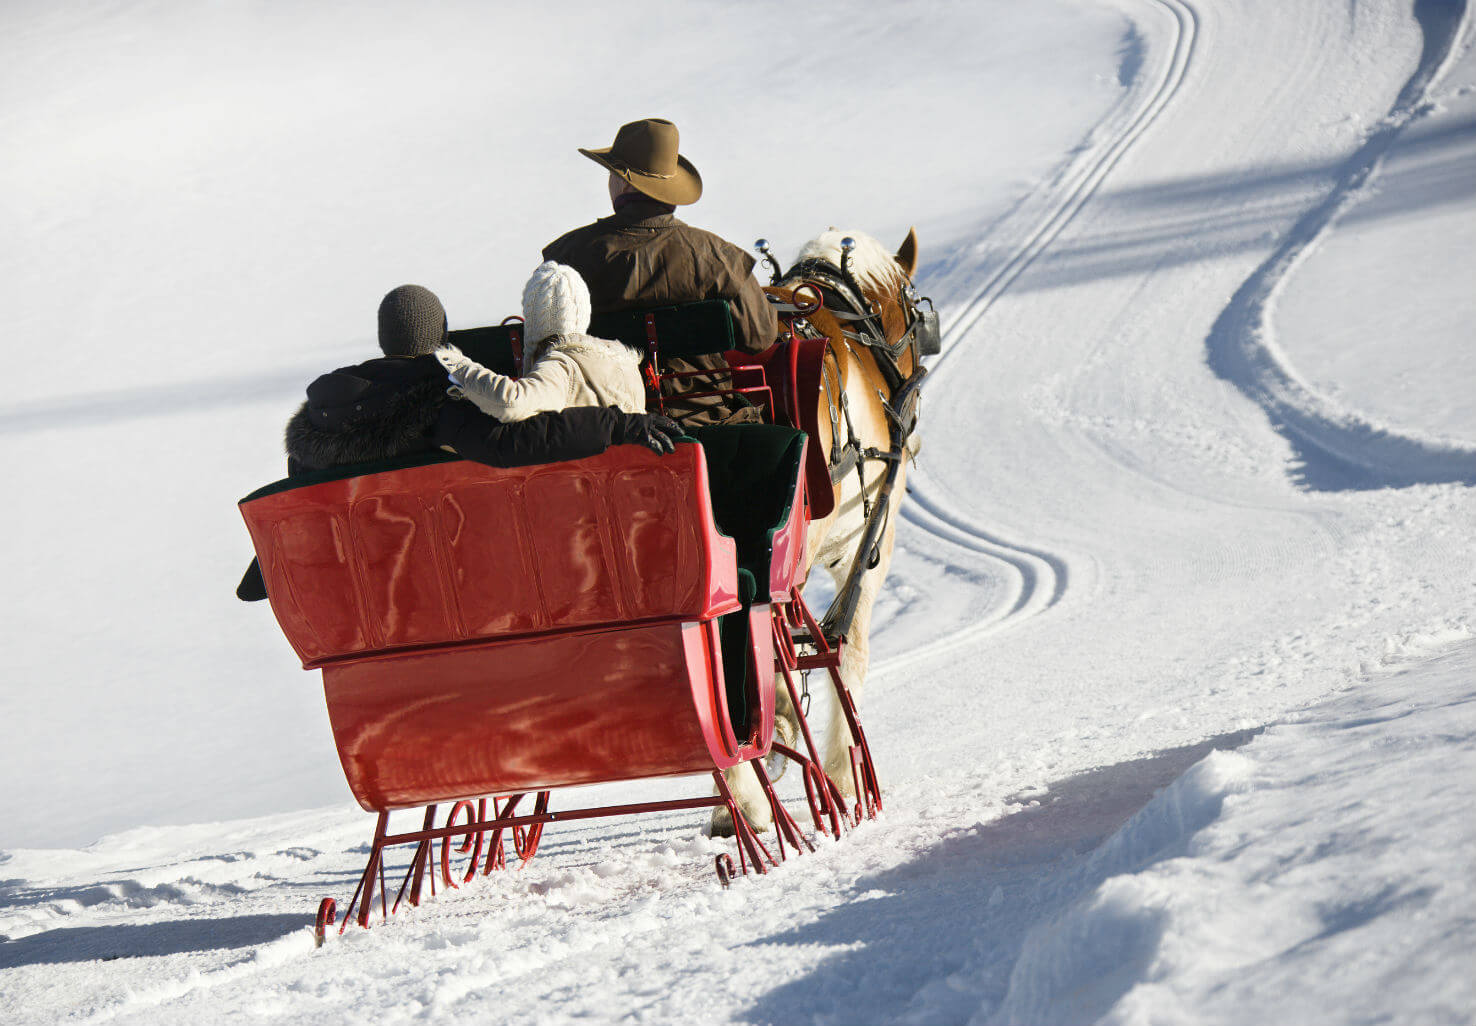 Couple going for a sleigh ride across a snowy trail